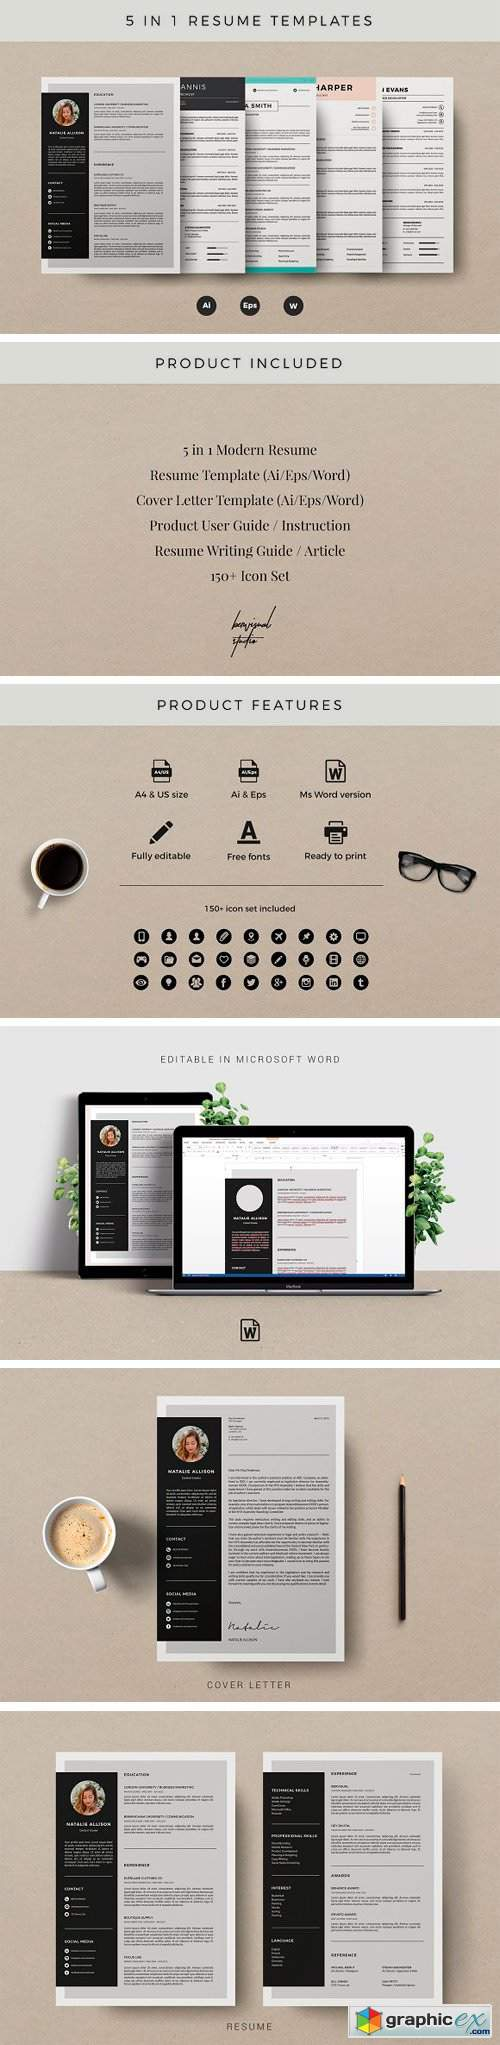 5 in 1 Resume Template | CV